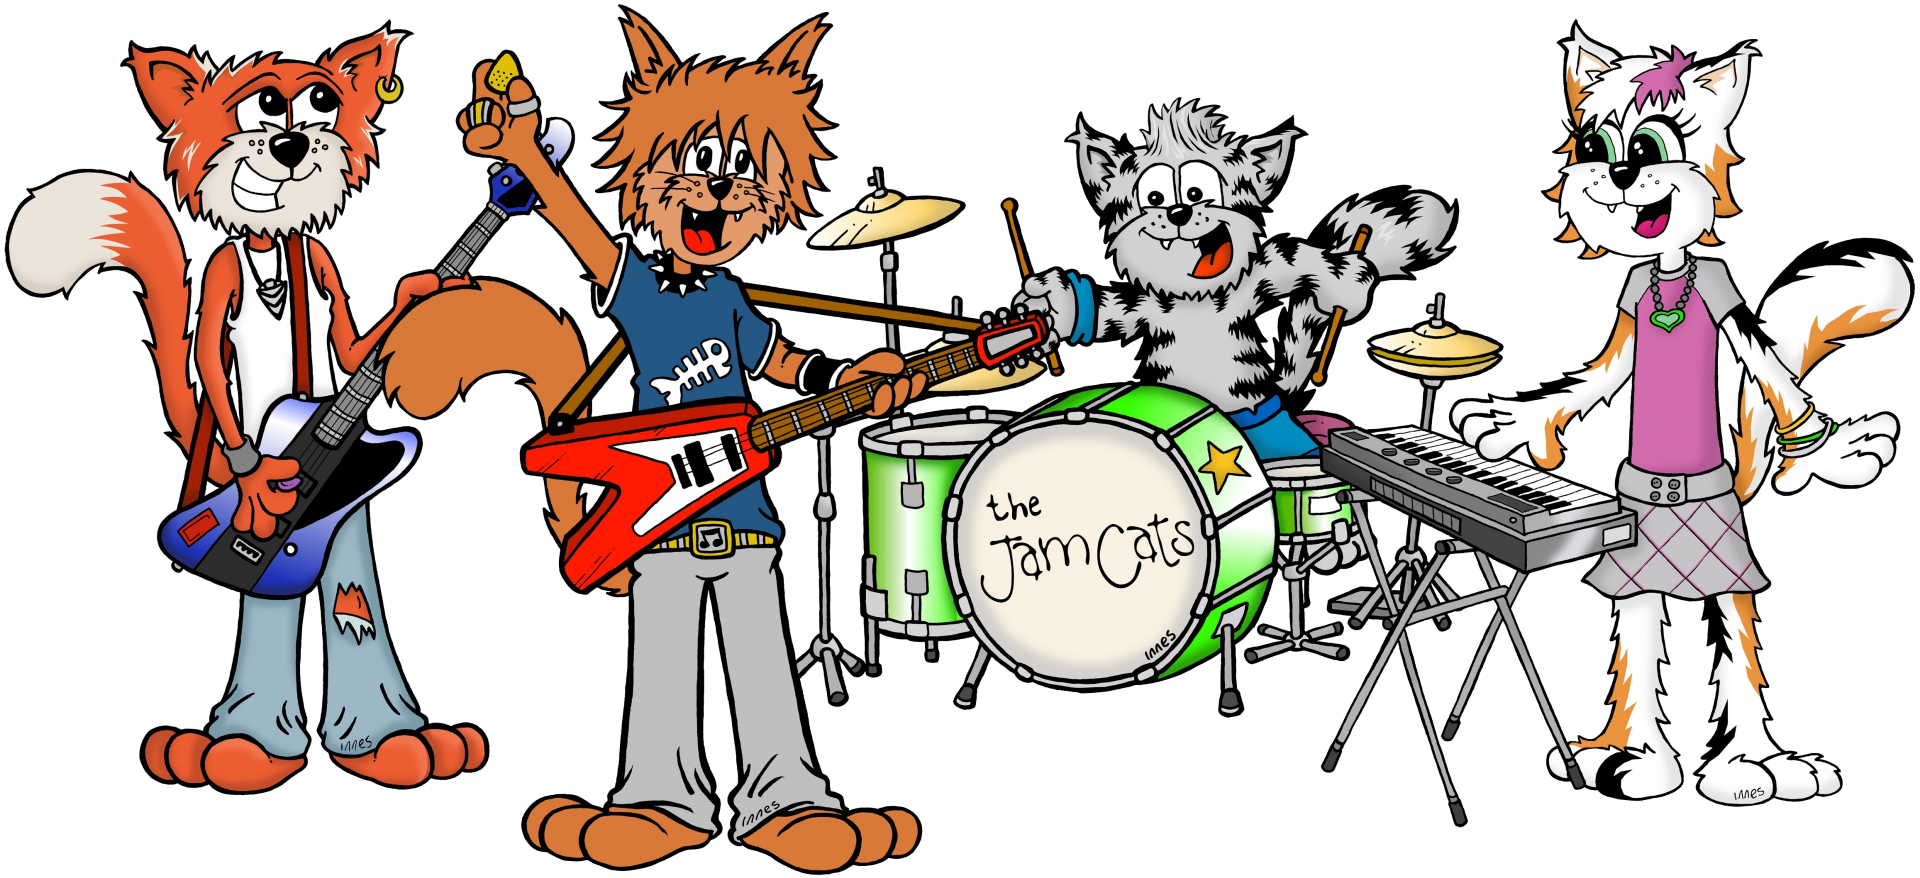 The Jam Cats Characters